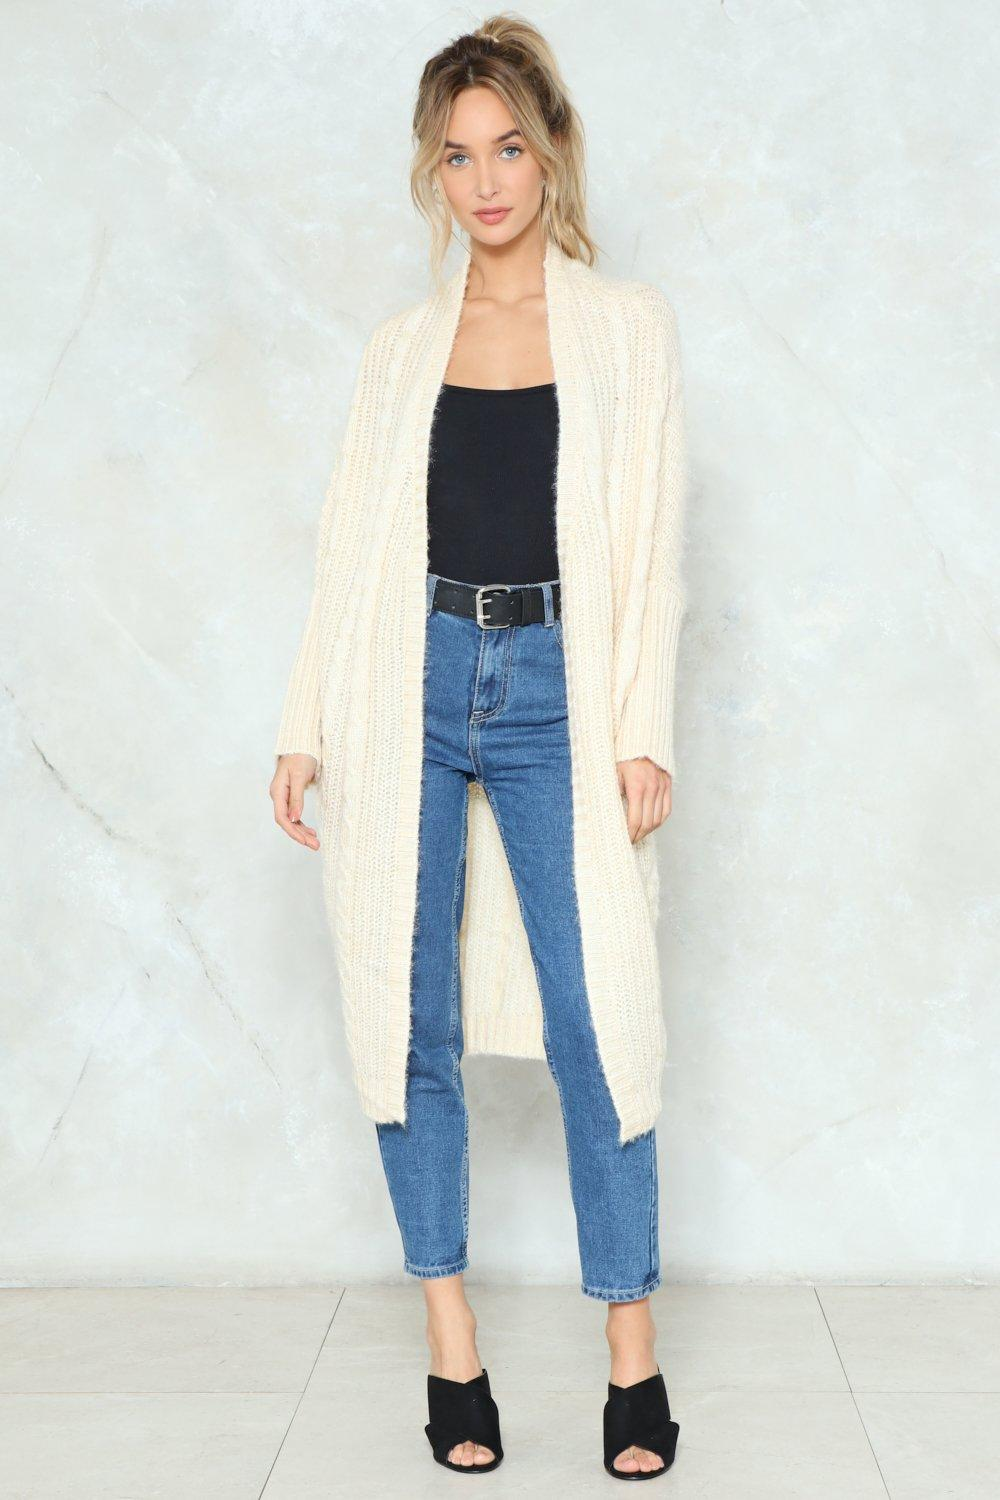 Knit Will Work Out Oversized Cardigan | Shop Clothes at Nasty Gal!